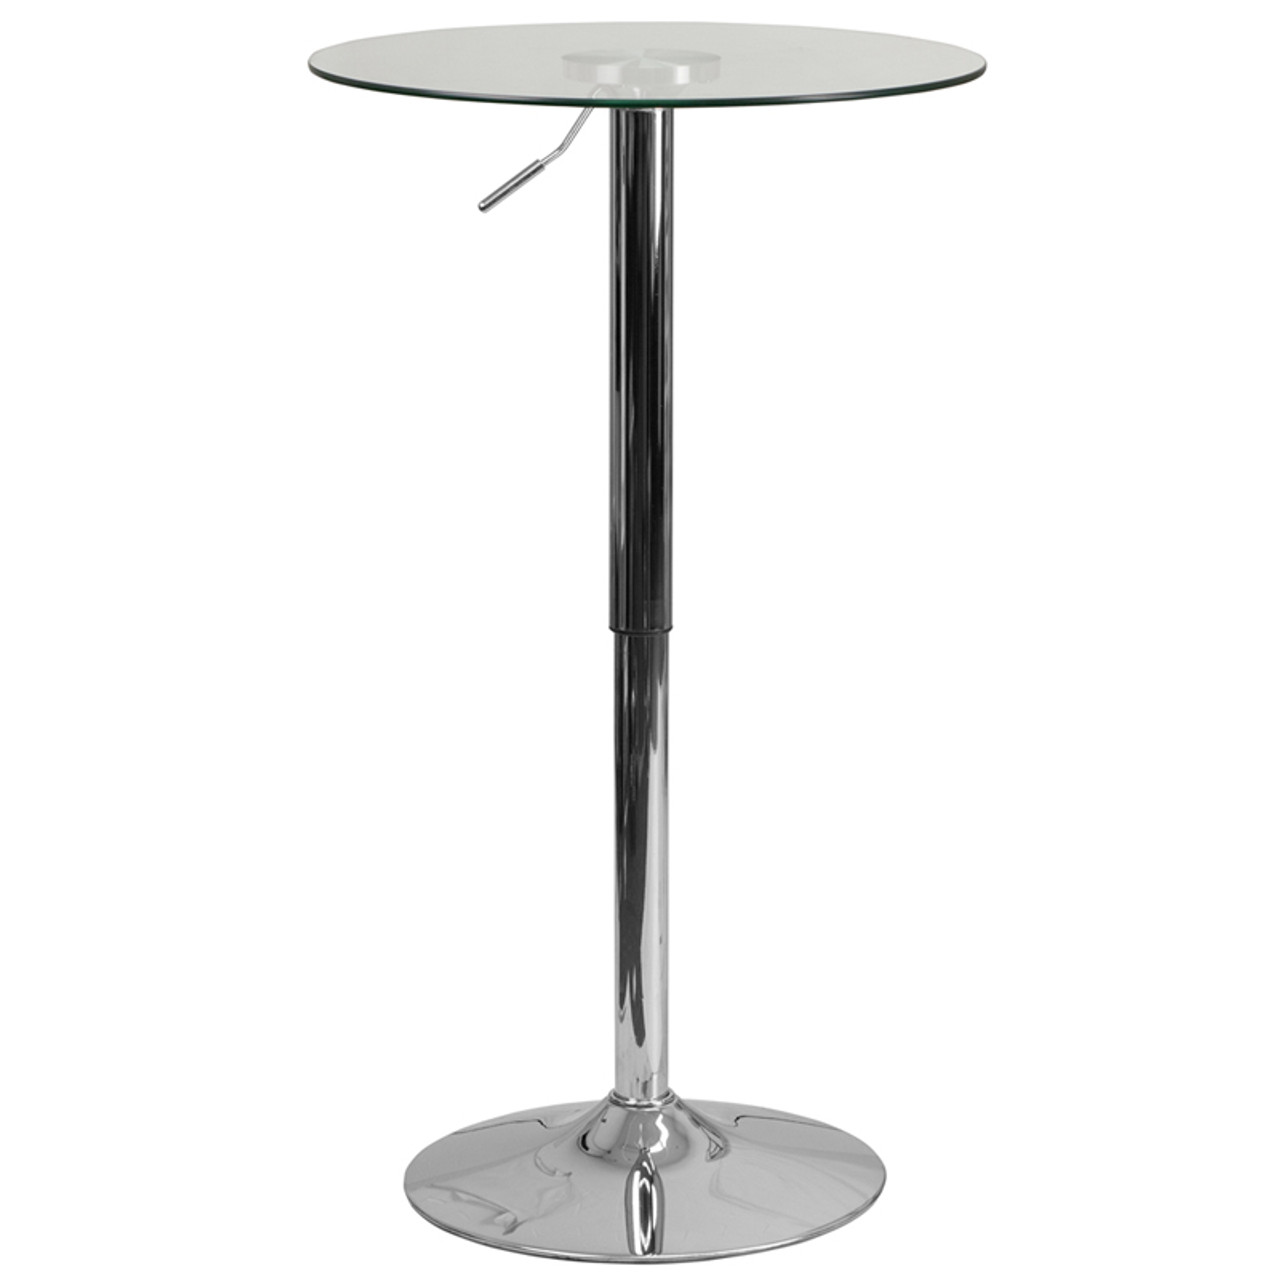 Adjustable Glass Tables